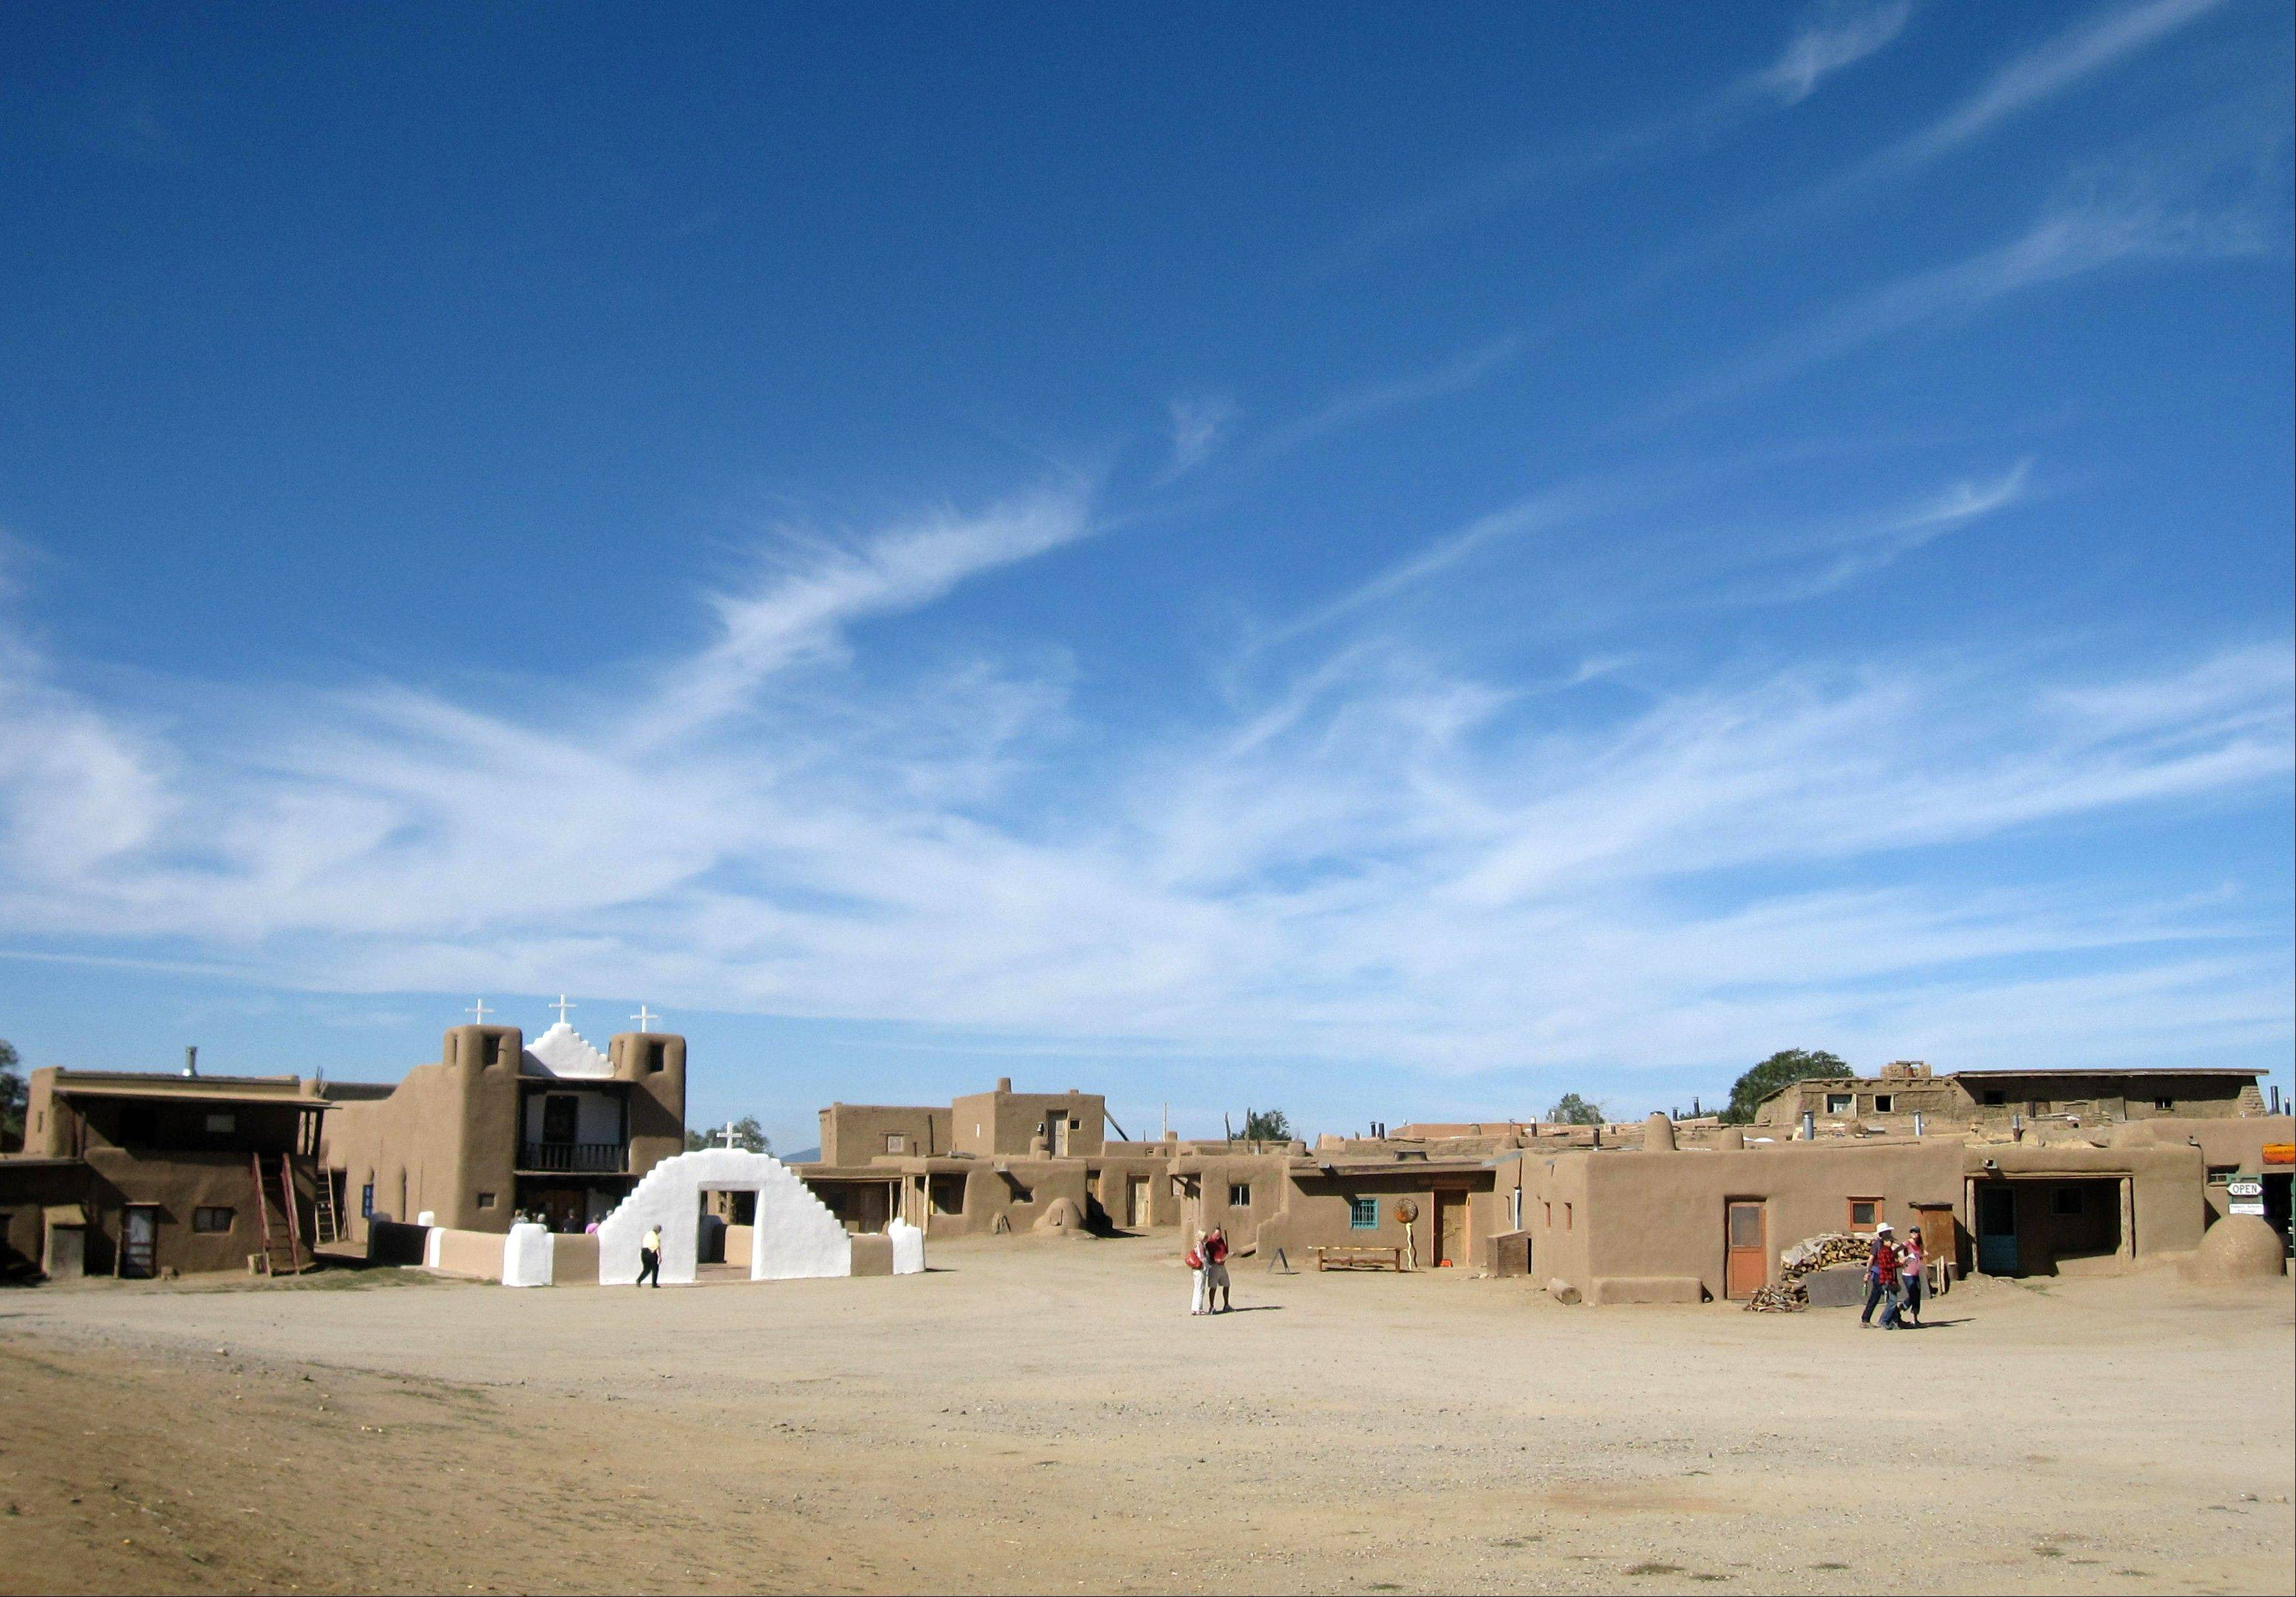 Tours of the Taos Pueblo in Taos, N.M., describe the community's survival and challenges across the centuries.